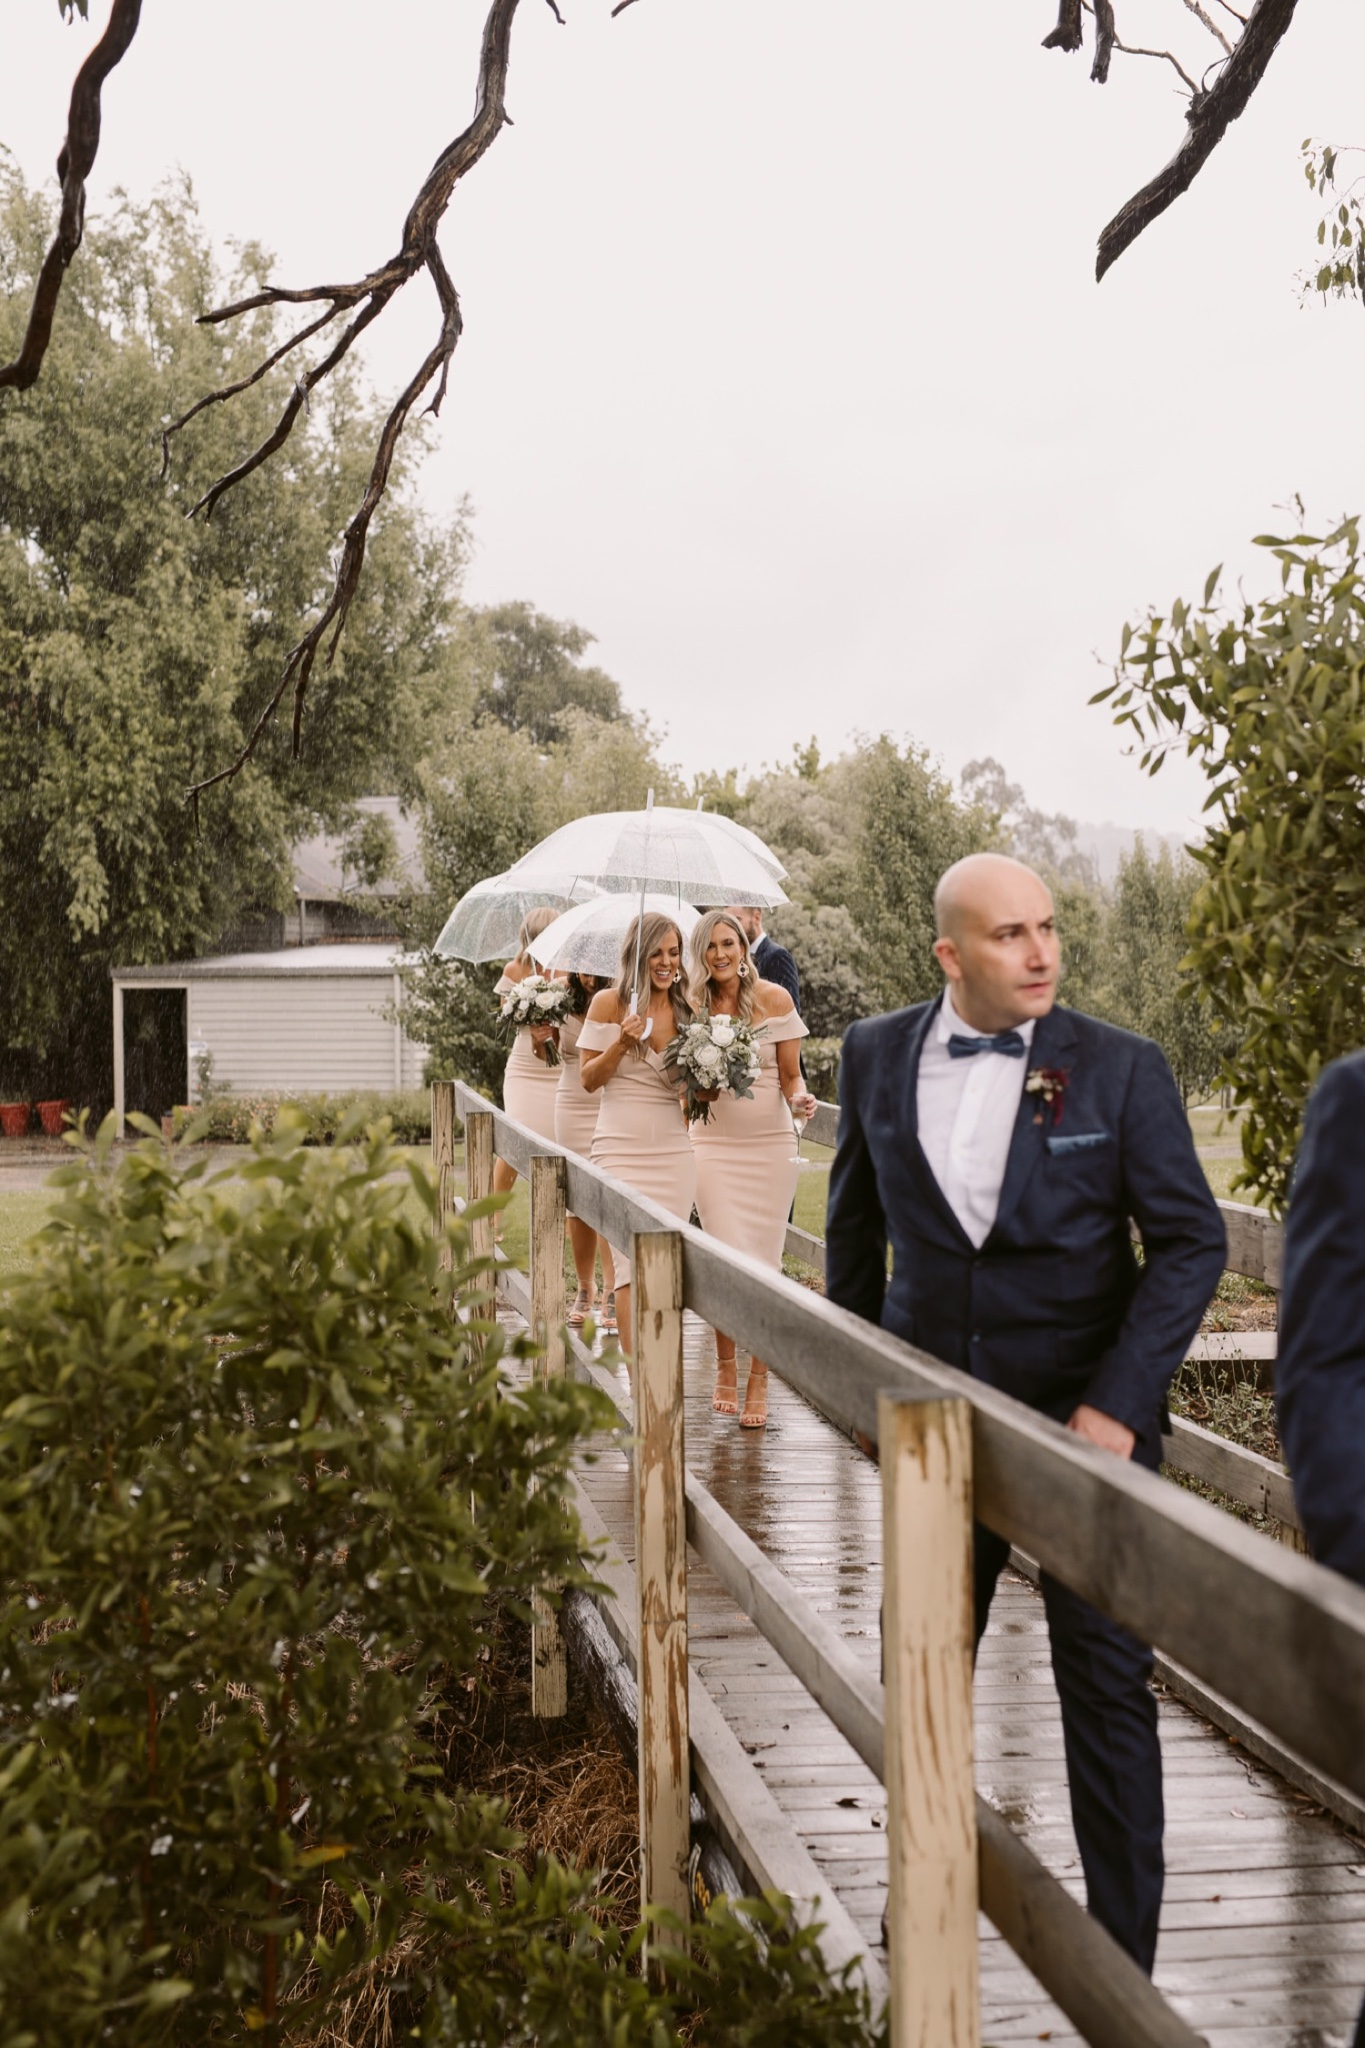 Immerse Yarra Valley Winery Wedding Photography89.jpg